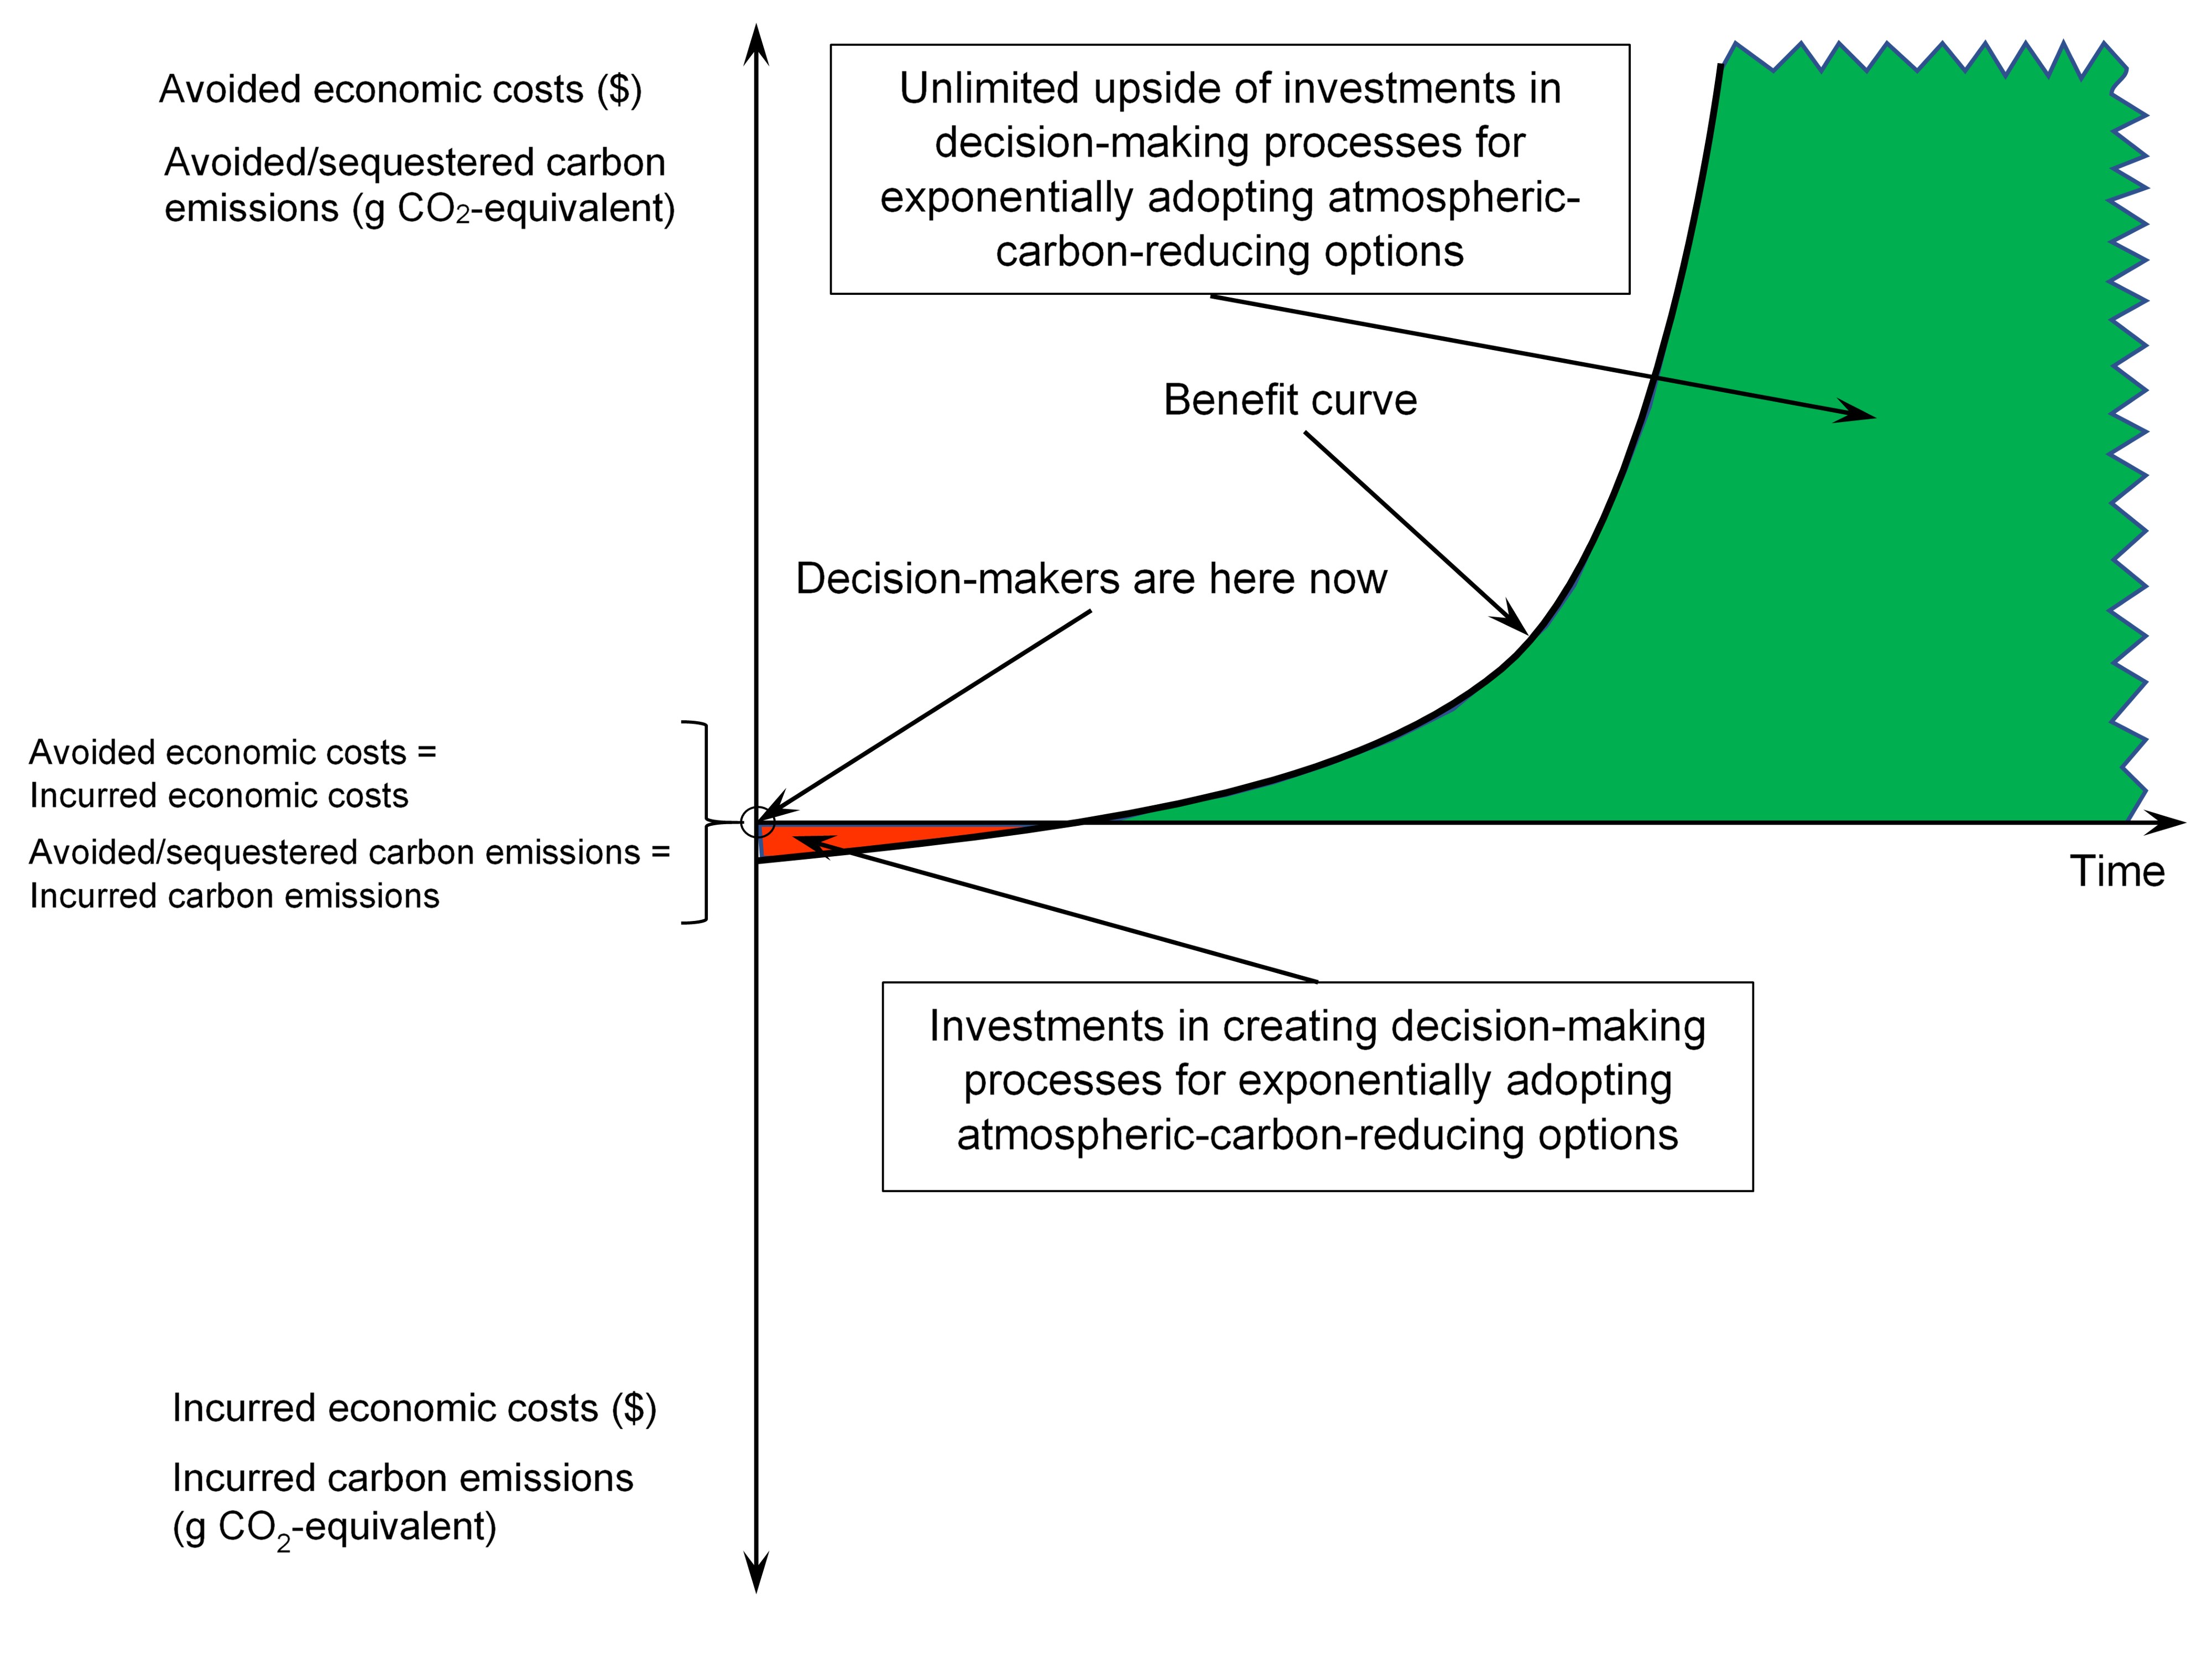 Unlimited Upside of Investments in Decision-making Processes for Exponentially Adopting Carbon-reducing Energy Options